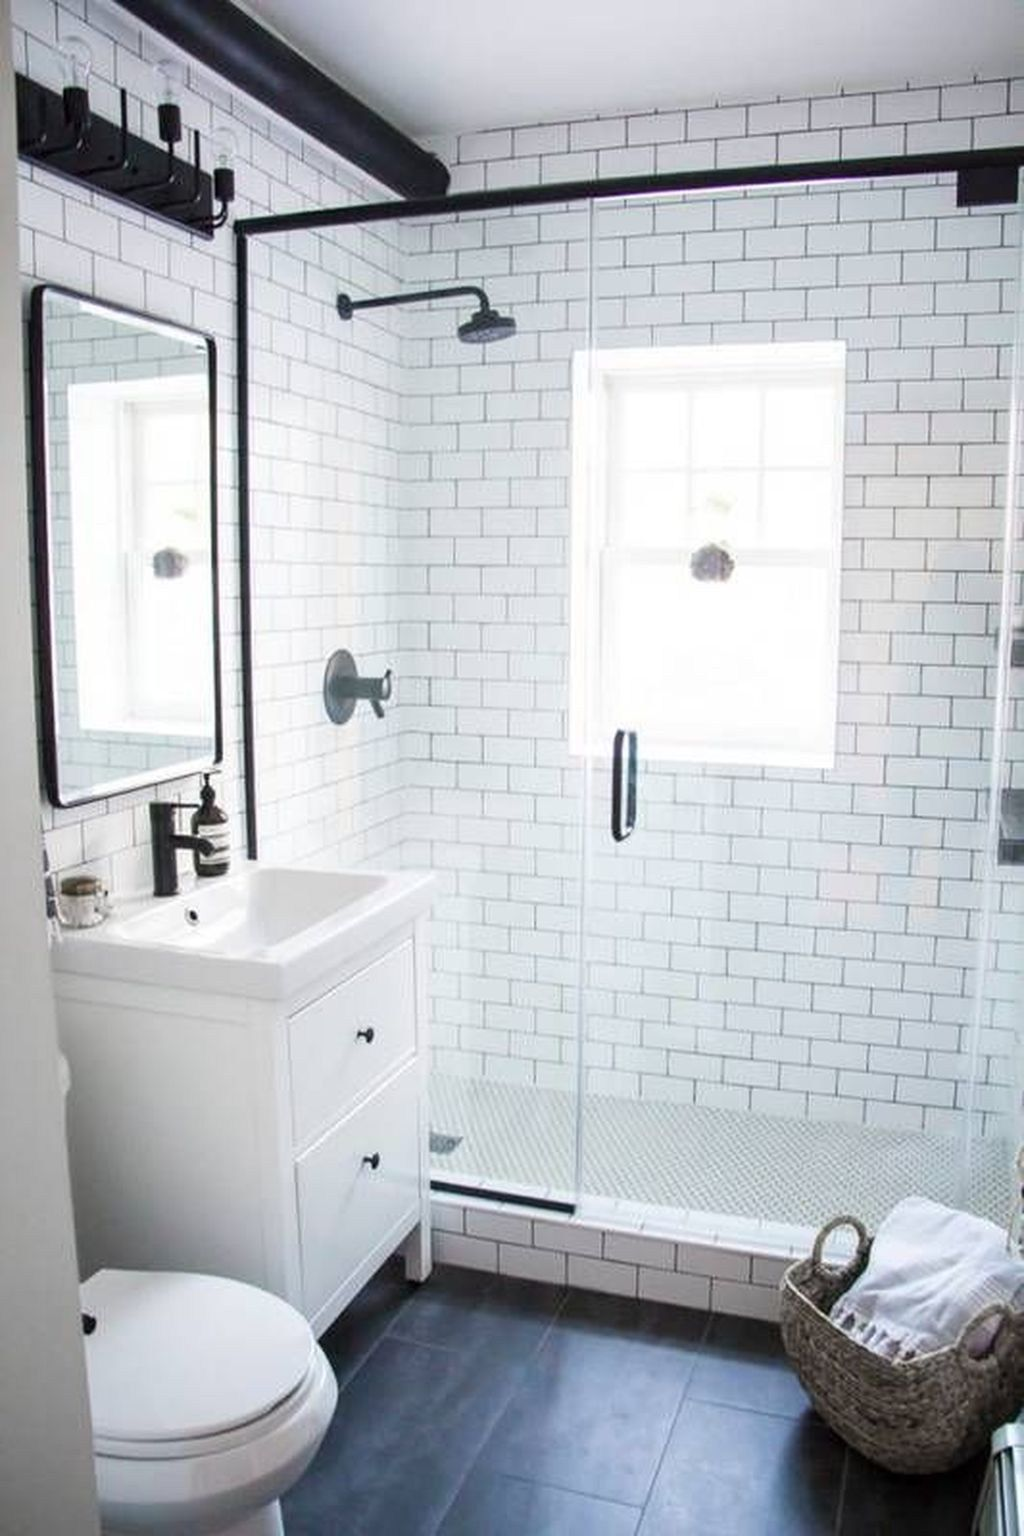 The Best Small Bathroom Remodel Ideas 12 Small Bathroom Small Bathroom Makeover Bathroom Remodel Master